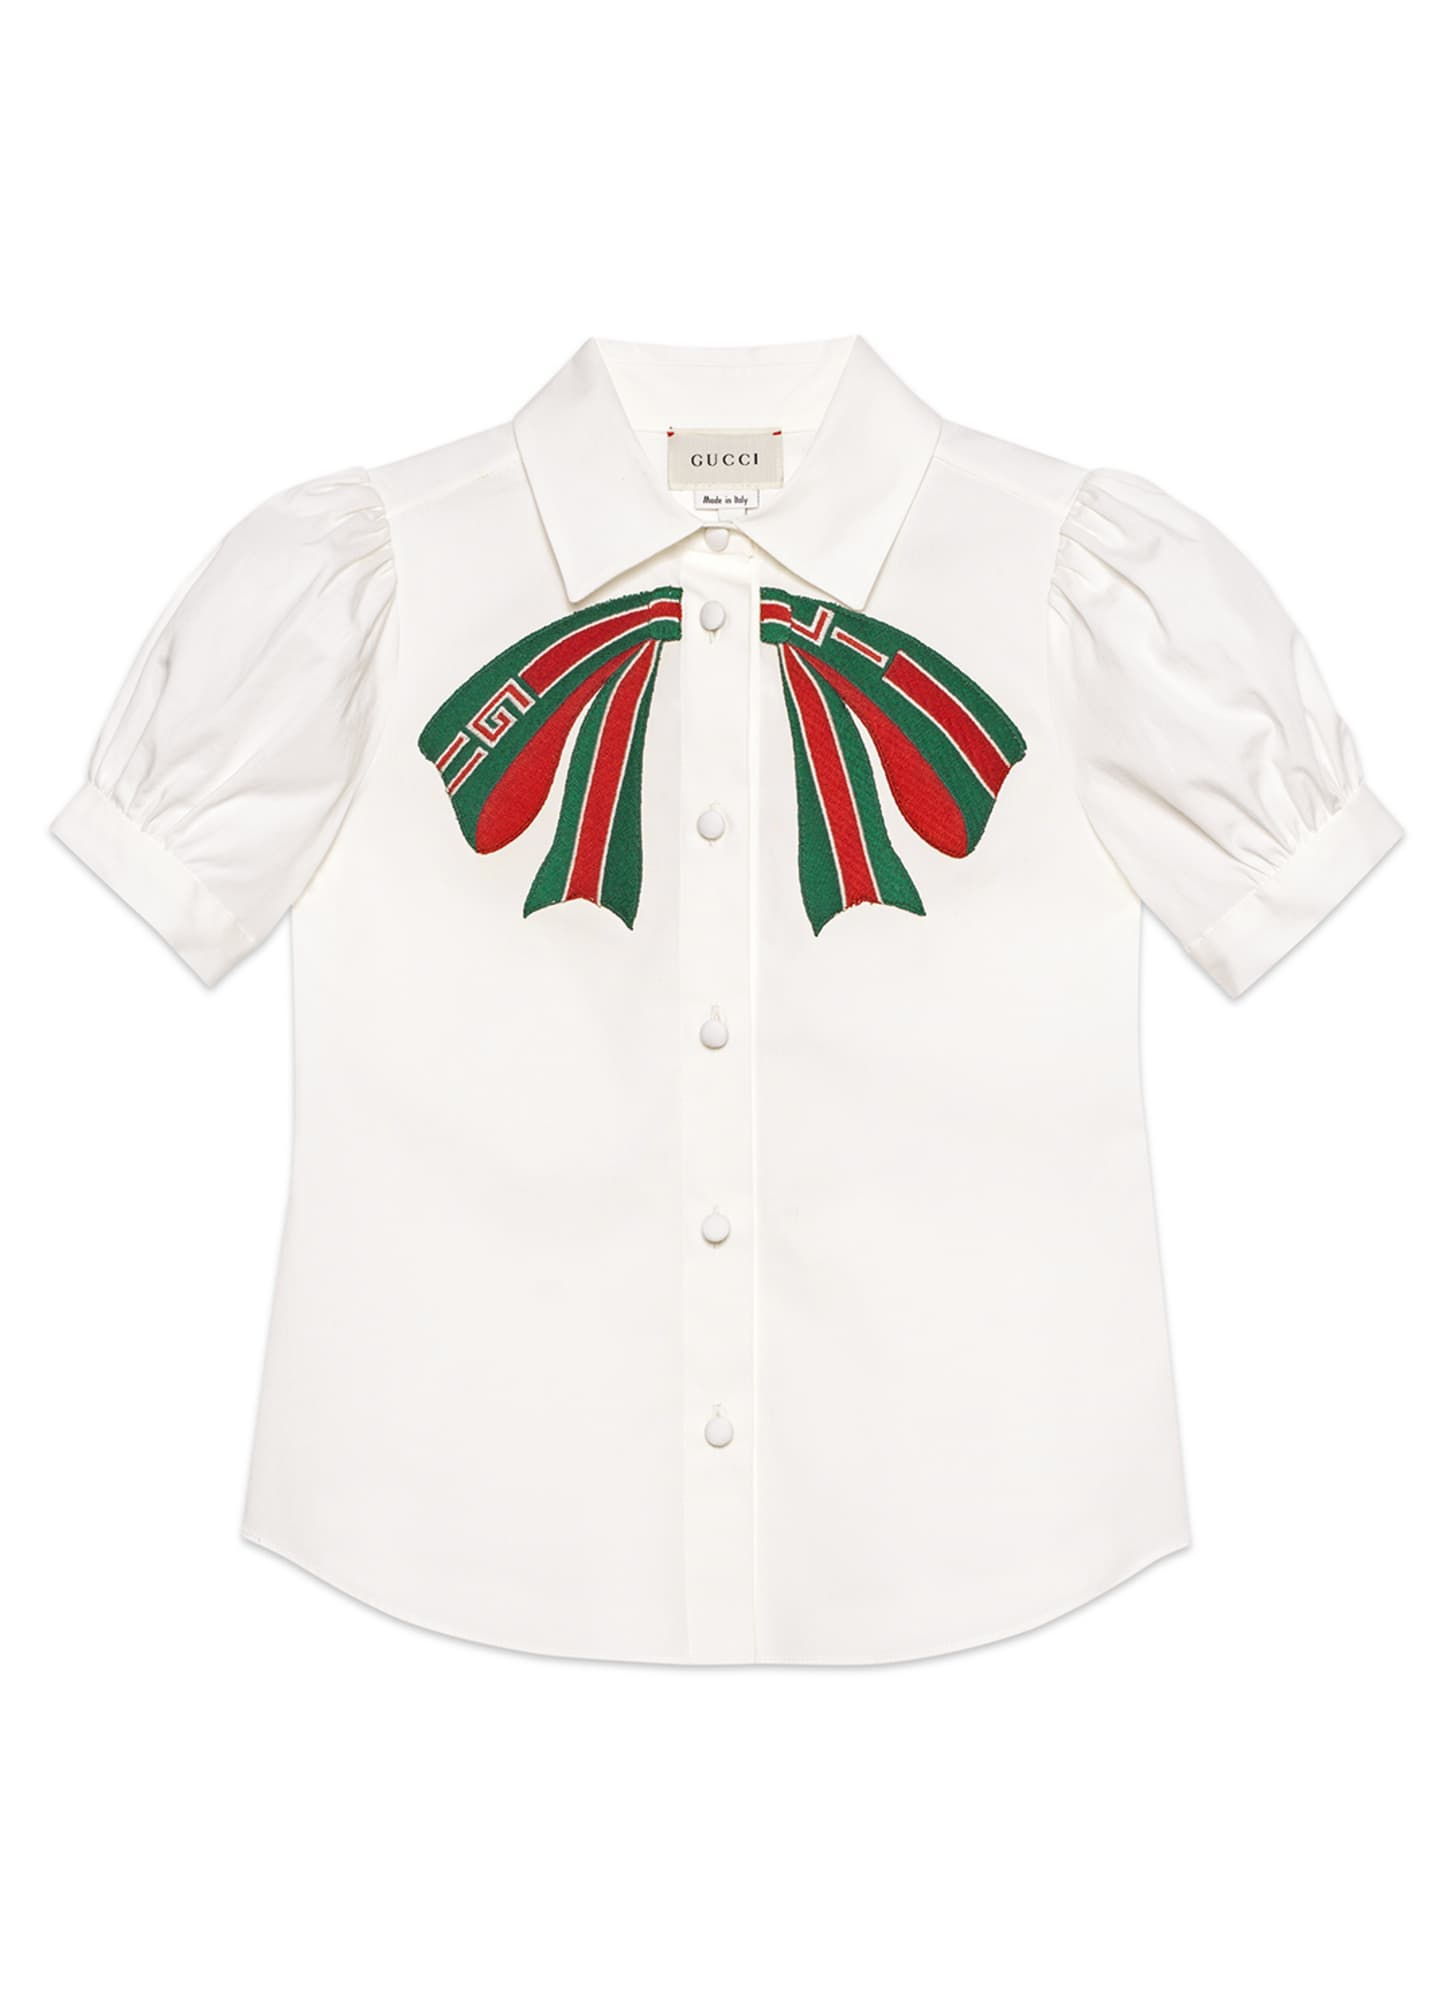 Gucci Puffy-Sleeve Collared Top w/ Logo Bow Applique,